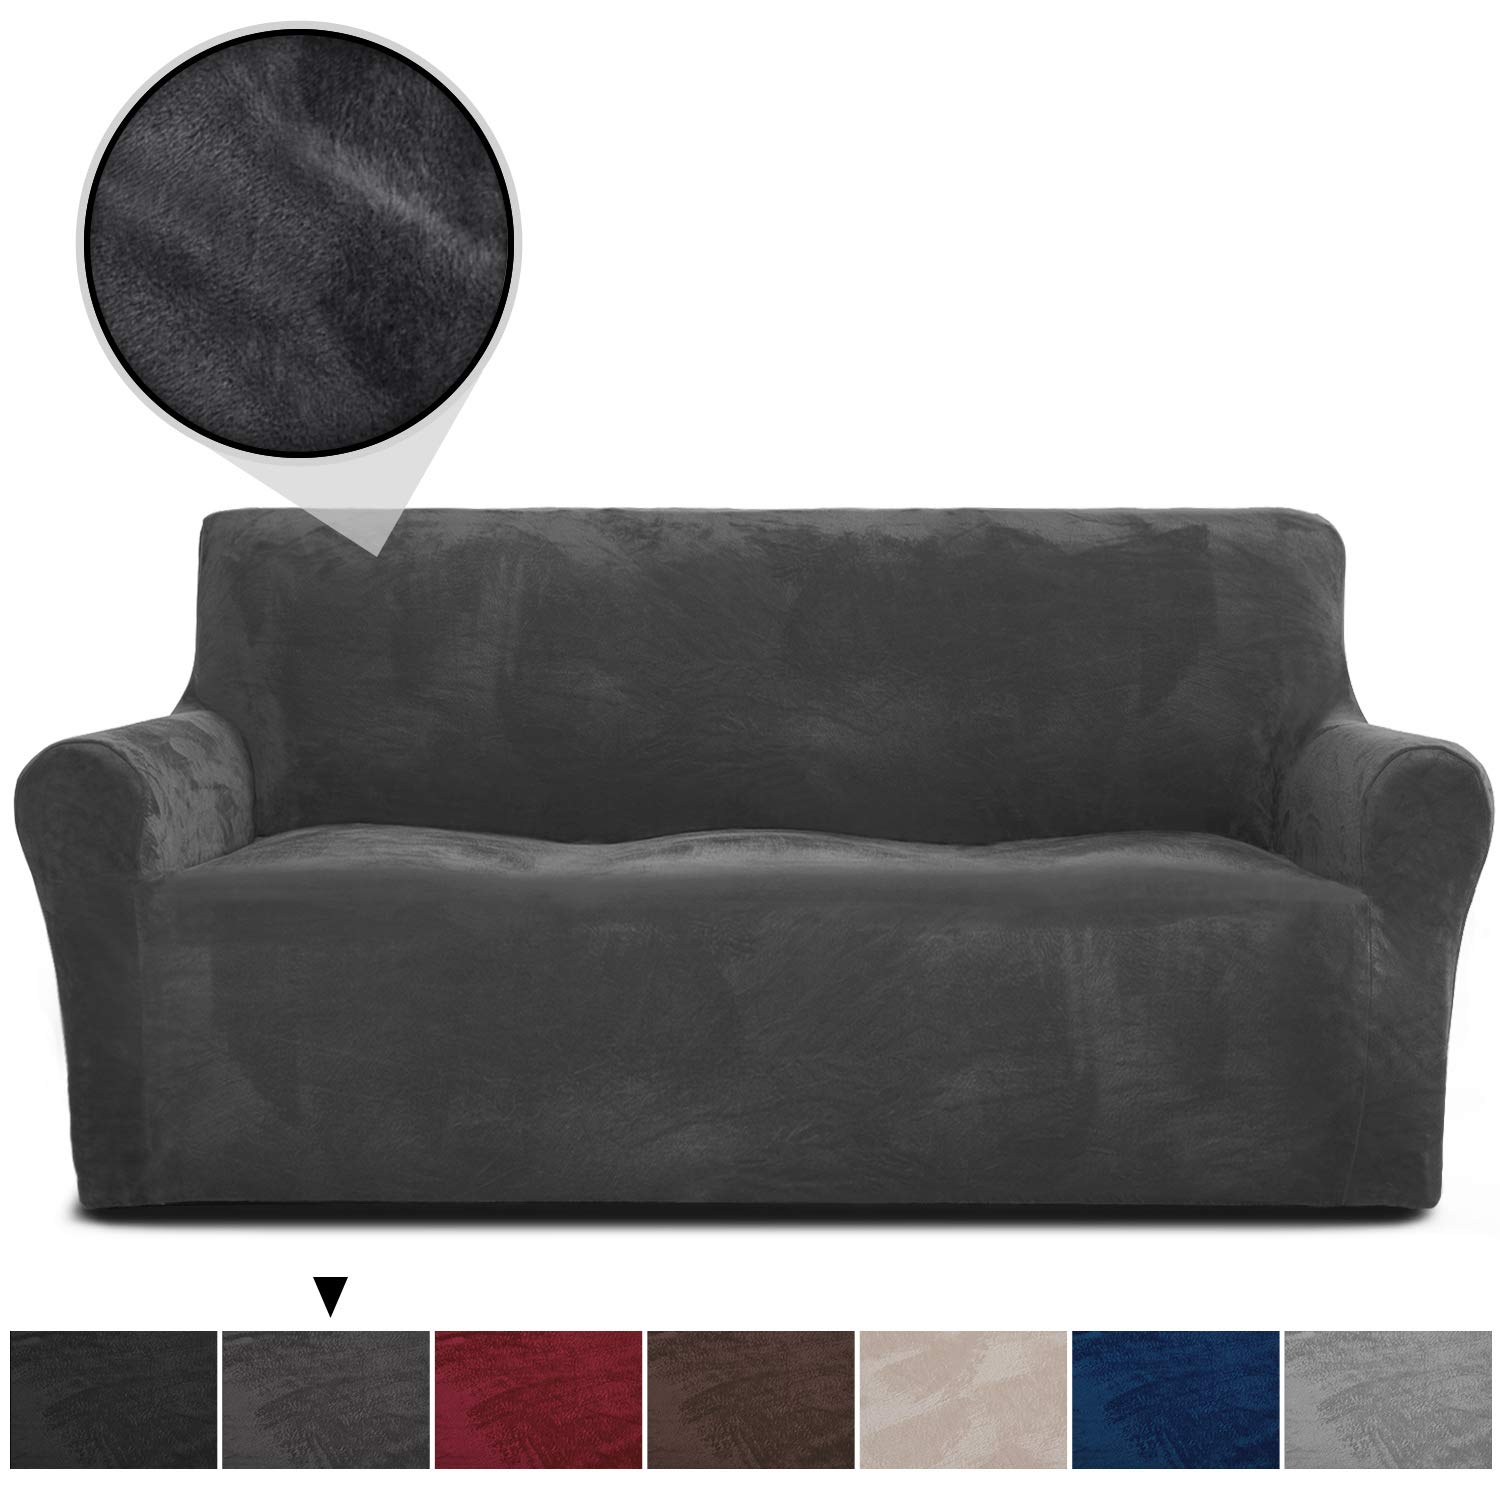 Wondrous Rhf Velvet Sofa Slipcover Stretch Couch Covers For 3 Cushion Couch Couch Covers For Sofa Sofa Covers For Living Room Couch Covers For Dogs Sofa Ocoug Best Dining Table And Chair Ideas Images Ocougorg